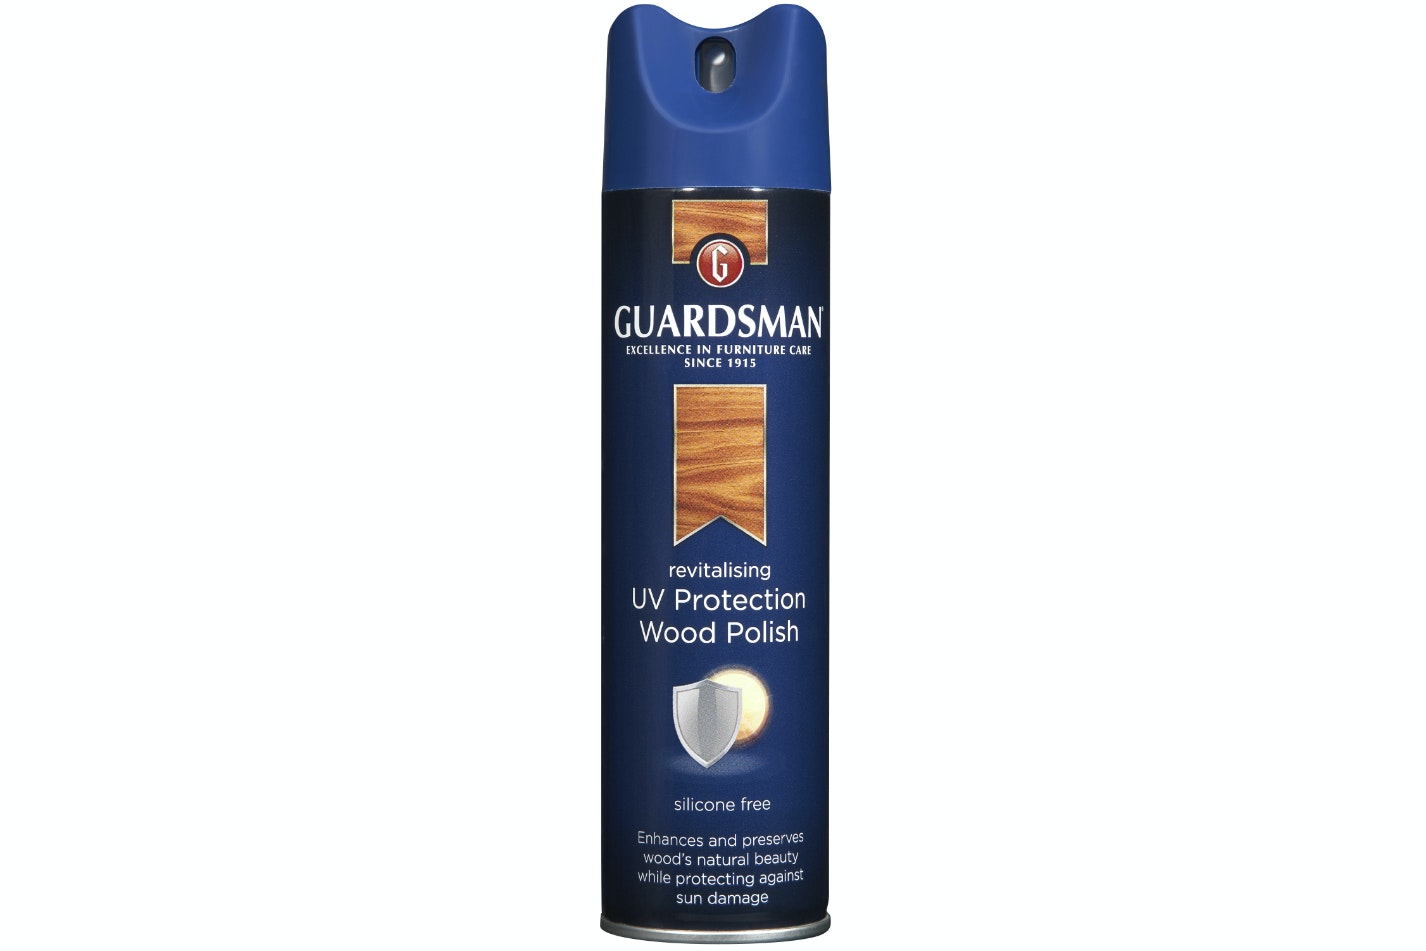 Guardsman UV Protection Wood Polish